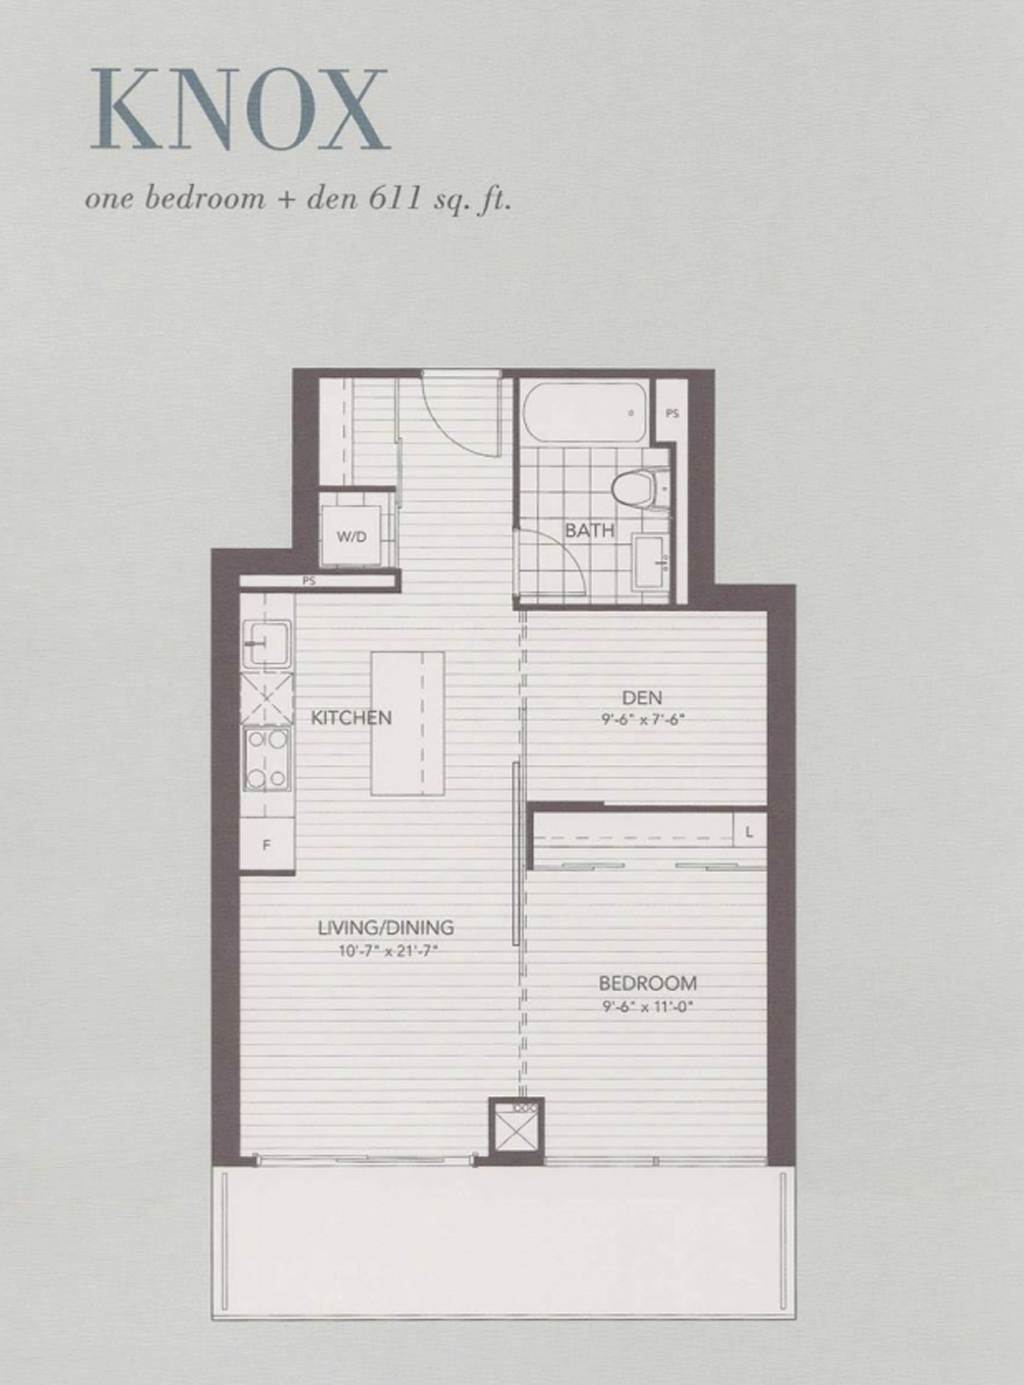 U CONDOS - FLOORPLANS ONE BED 611 SQ FT - CONTACT YOSSI KAPLAN